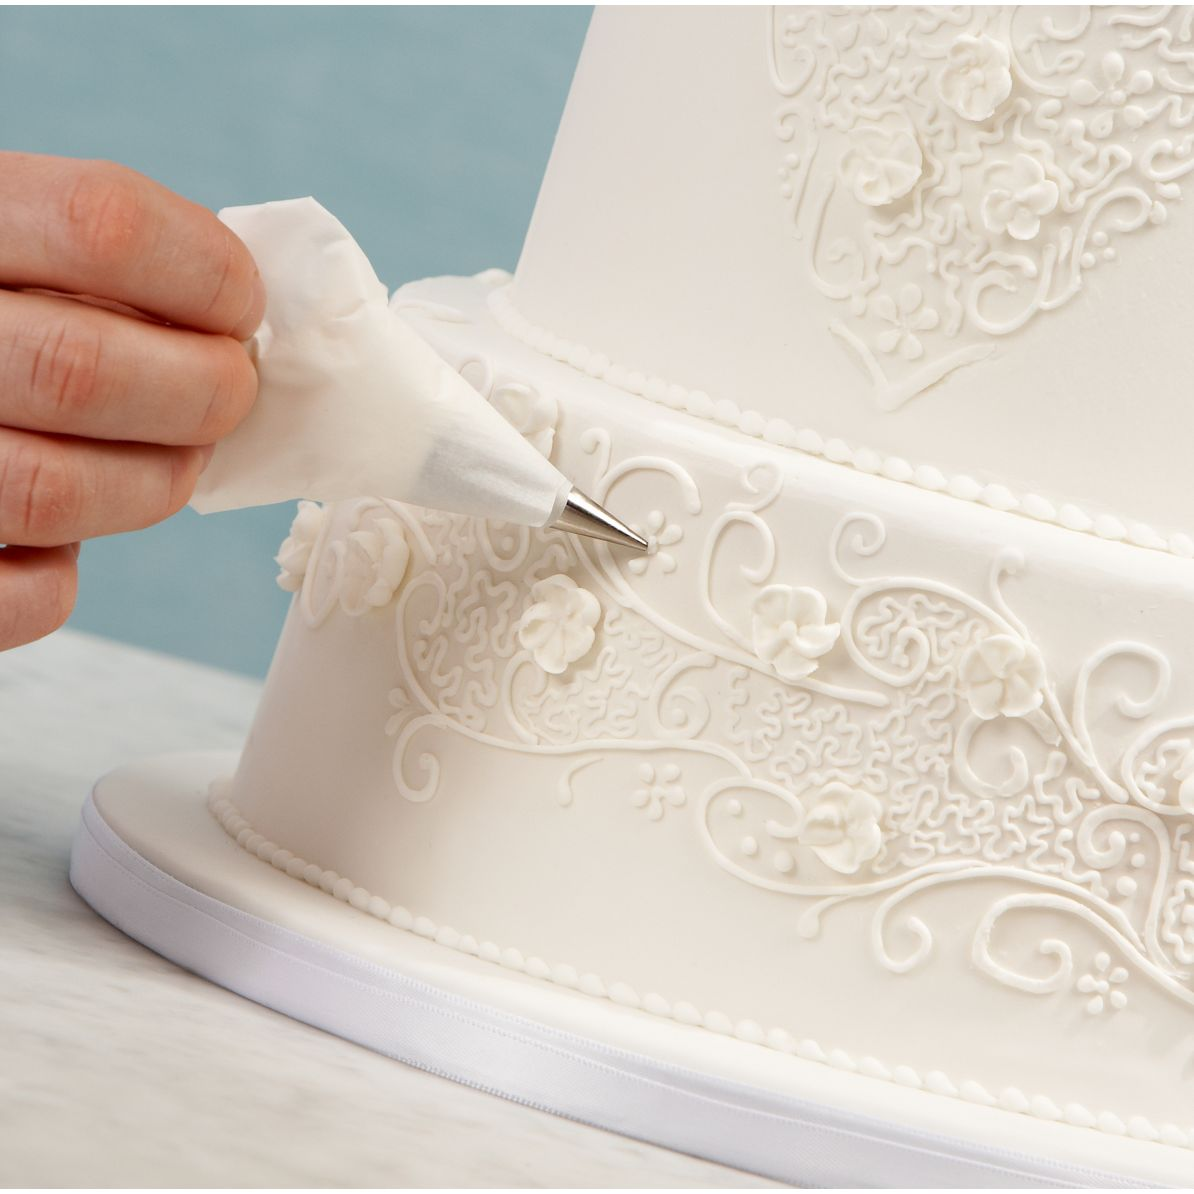 How To Decorate A Fondant Wedding Cake